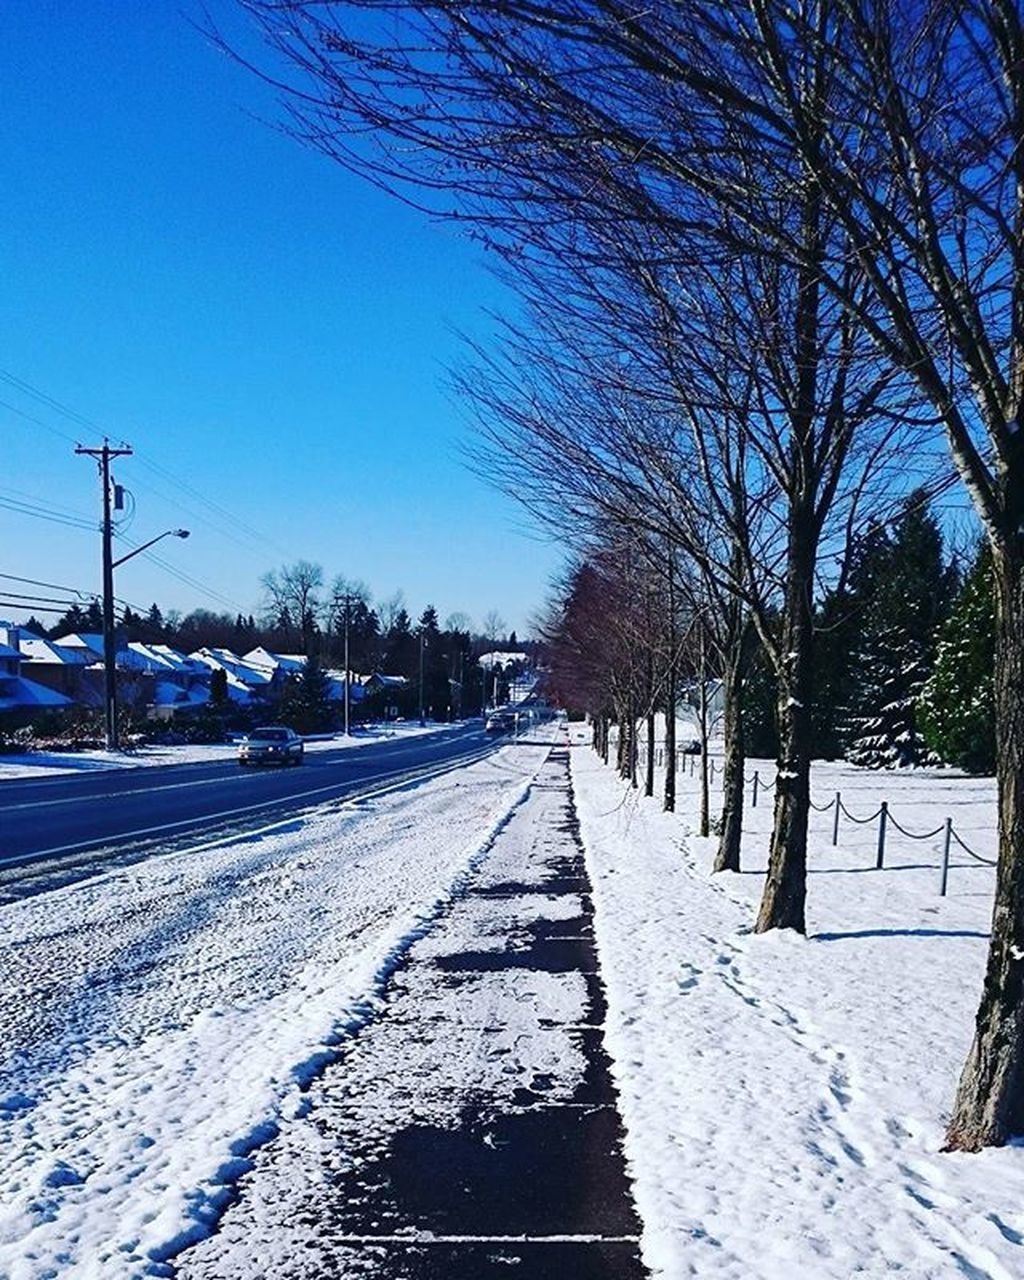 snow, cold temperature, winter, tree, transportation, rail transportation, bare tree, day, no people, railroad track, clear sky, nature, outdoors, the way forward, sky, blue